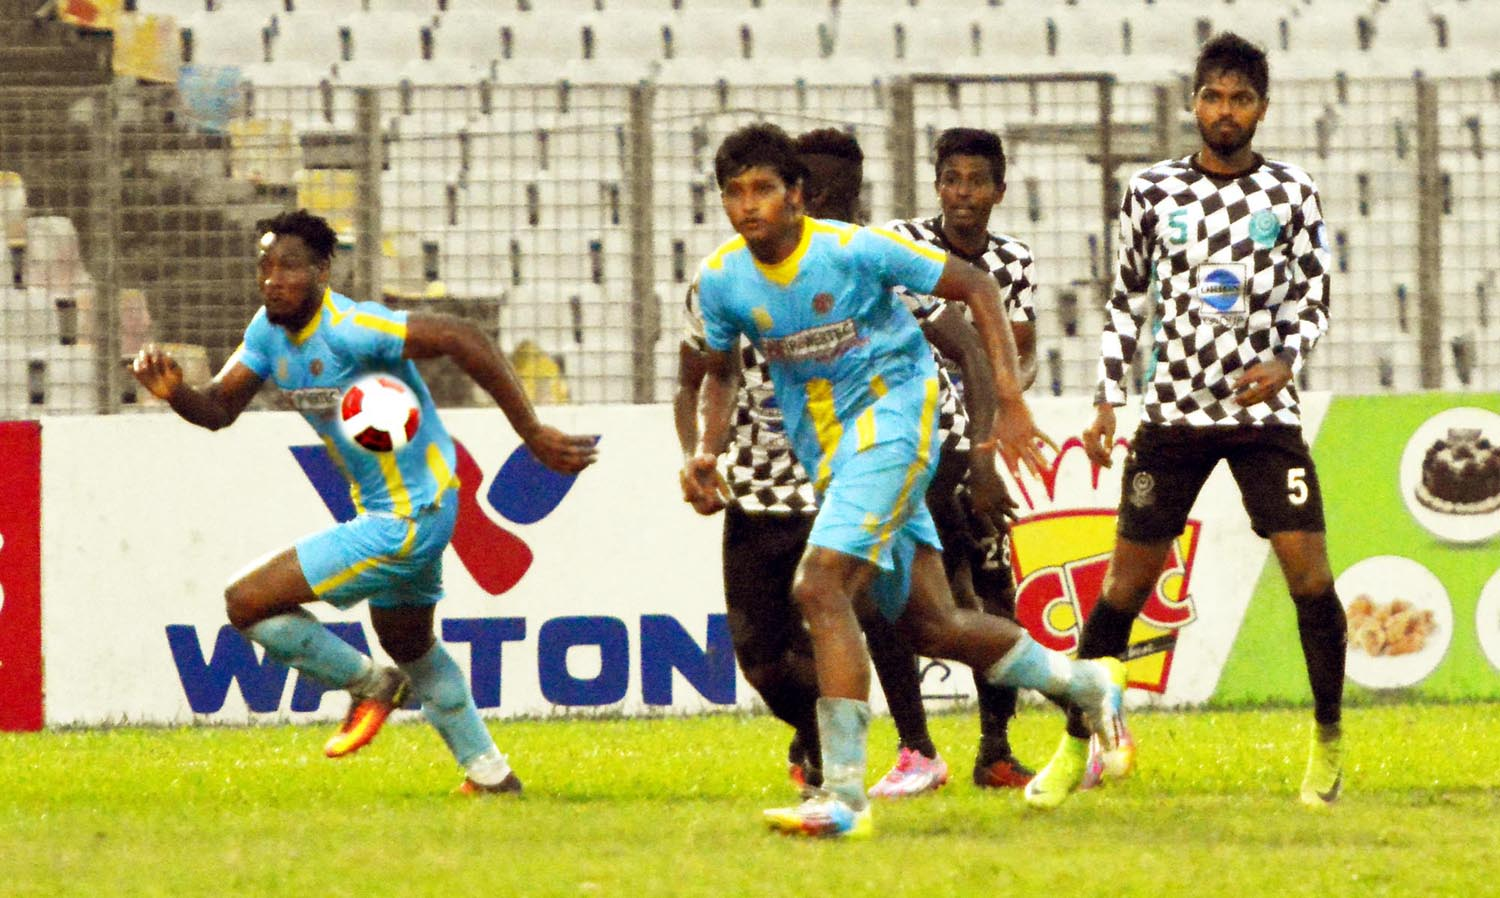 A moment of the match of the Saif Power Battery Bangladesh Premier League Football between Chittagong Abahani Limited and Dhaka Mohammedan Sporting Club Limited at the Bangabandhu National Stadium on Saturday.